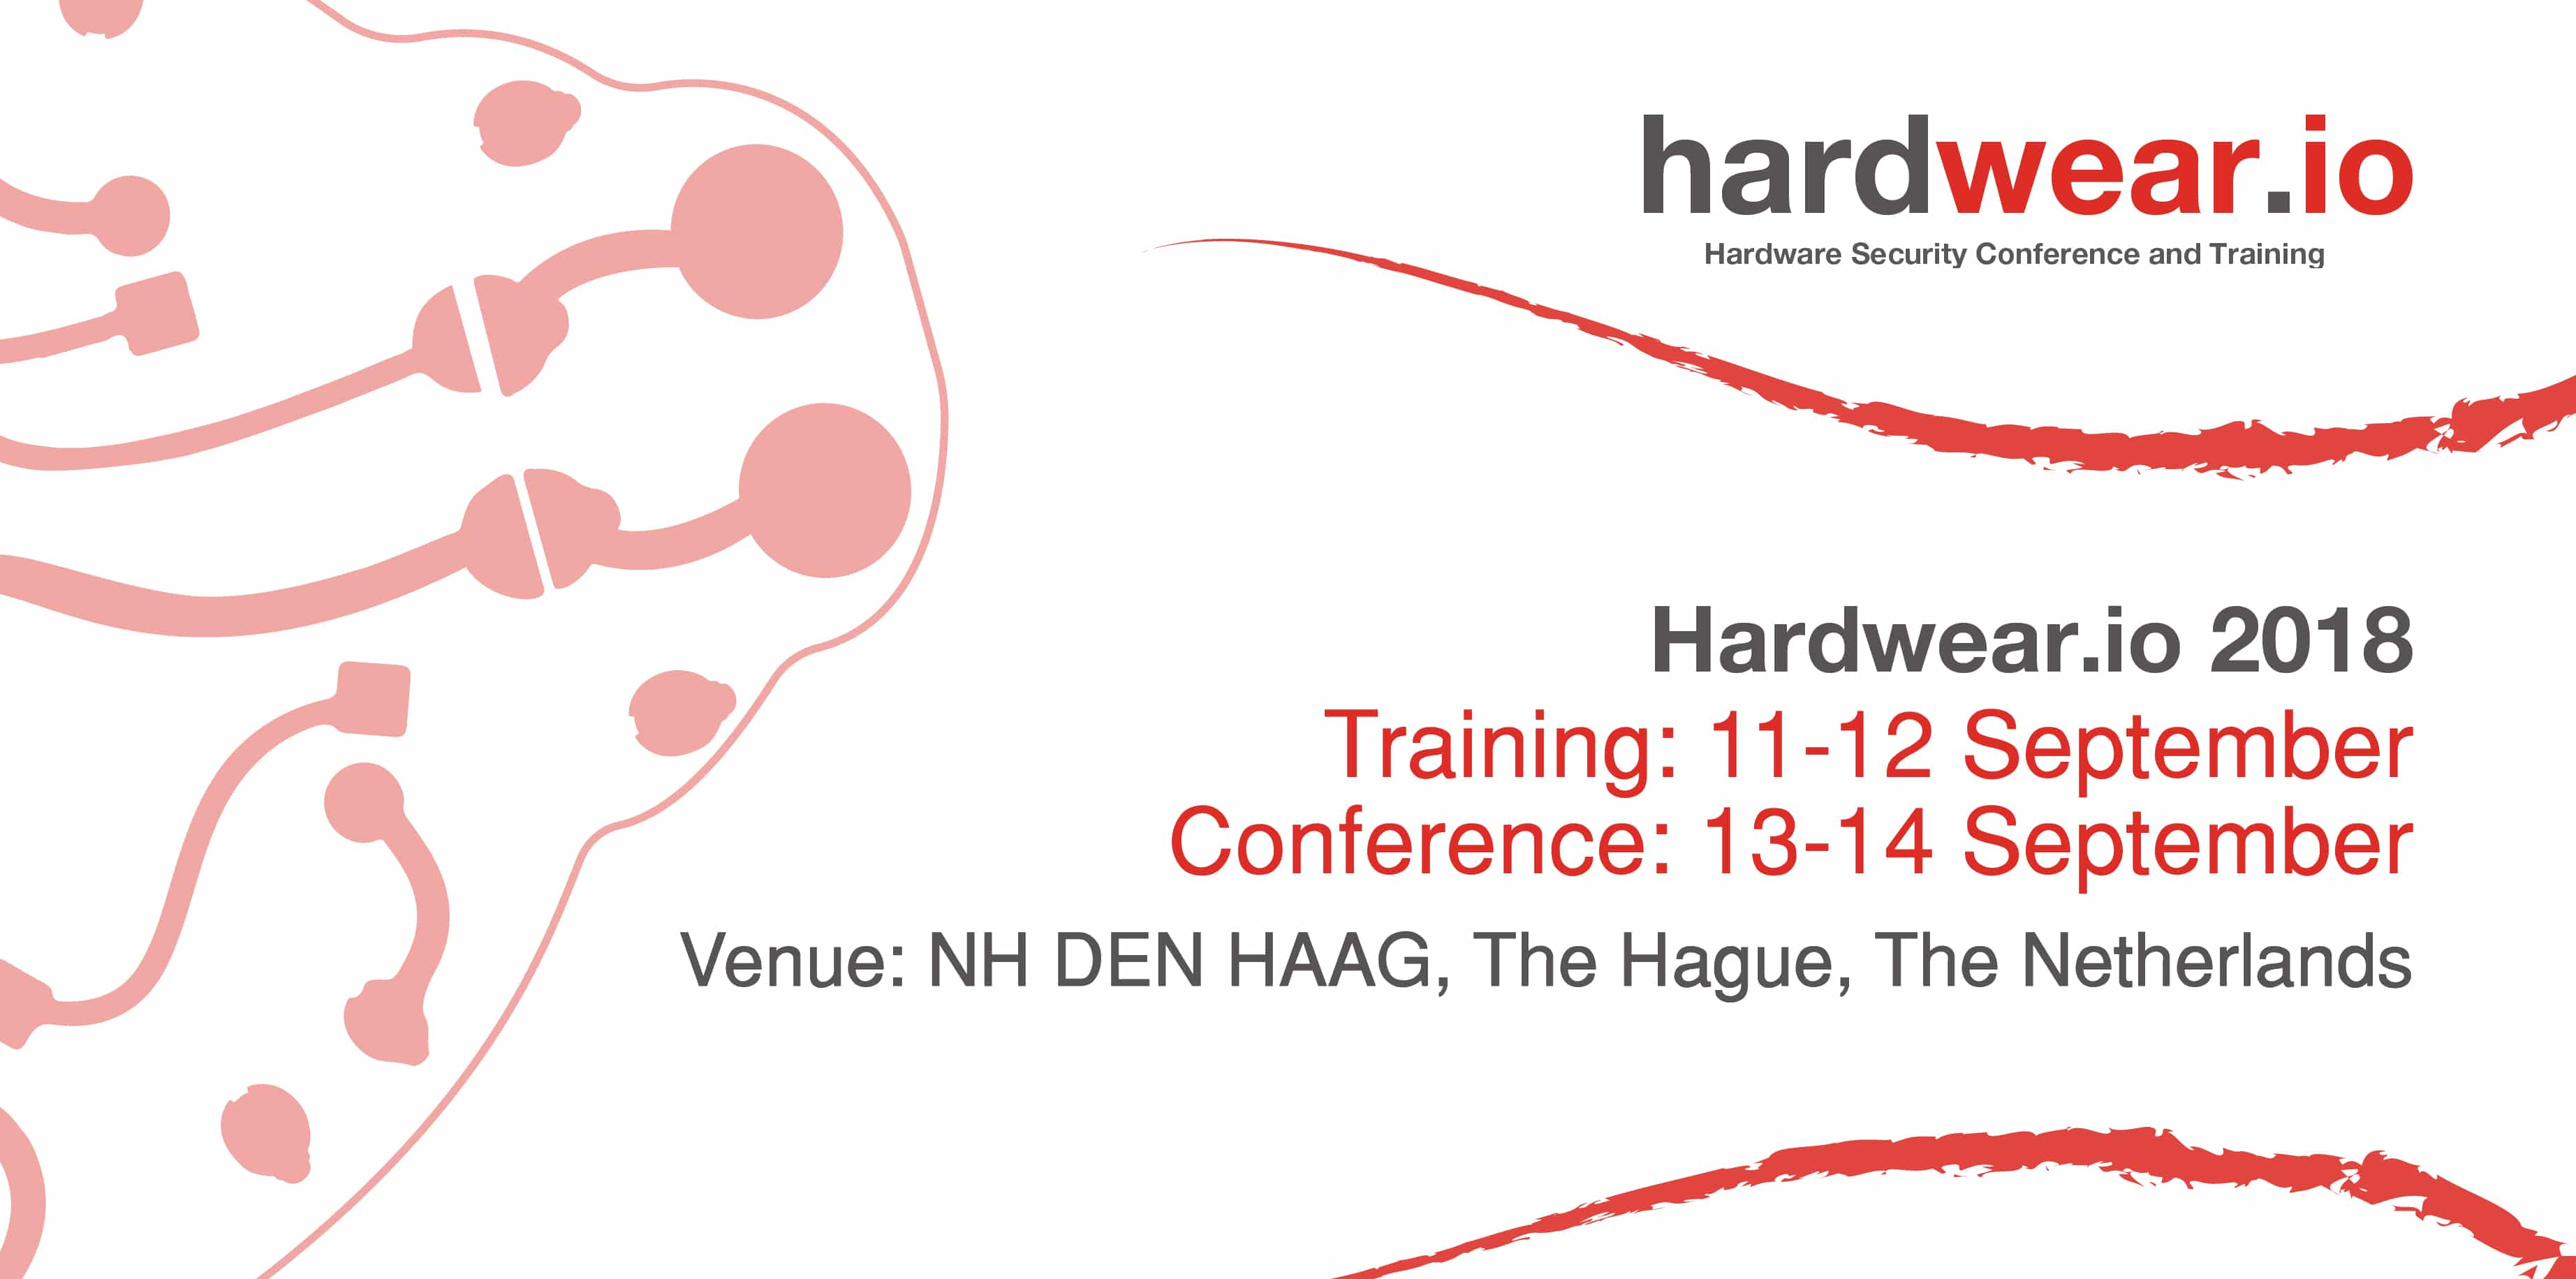 hardwear.io hardware security